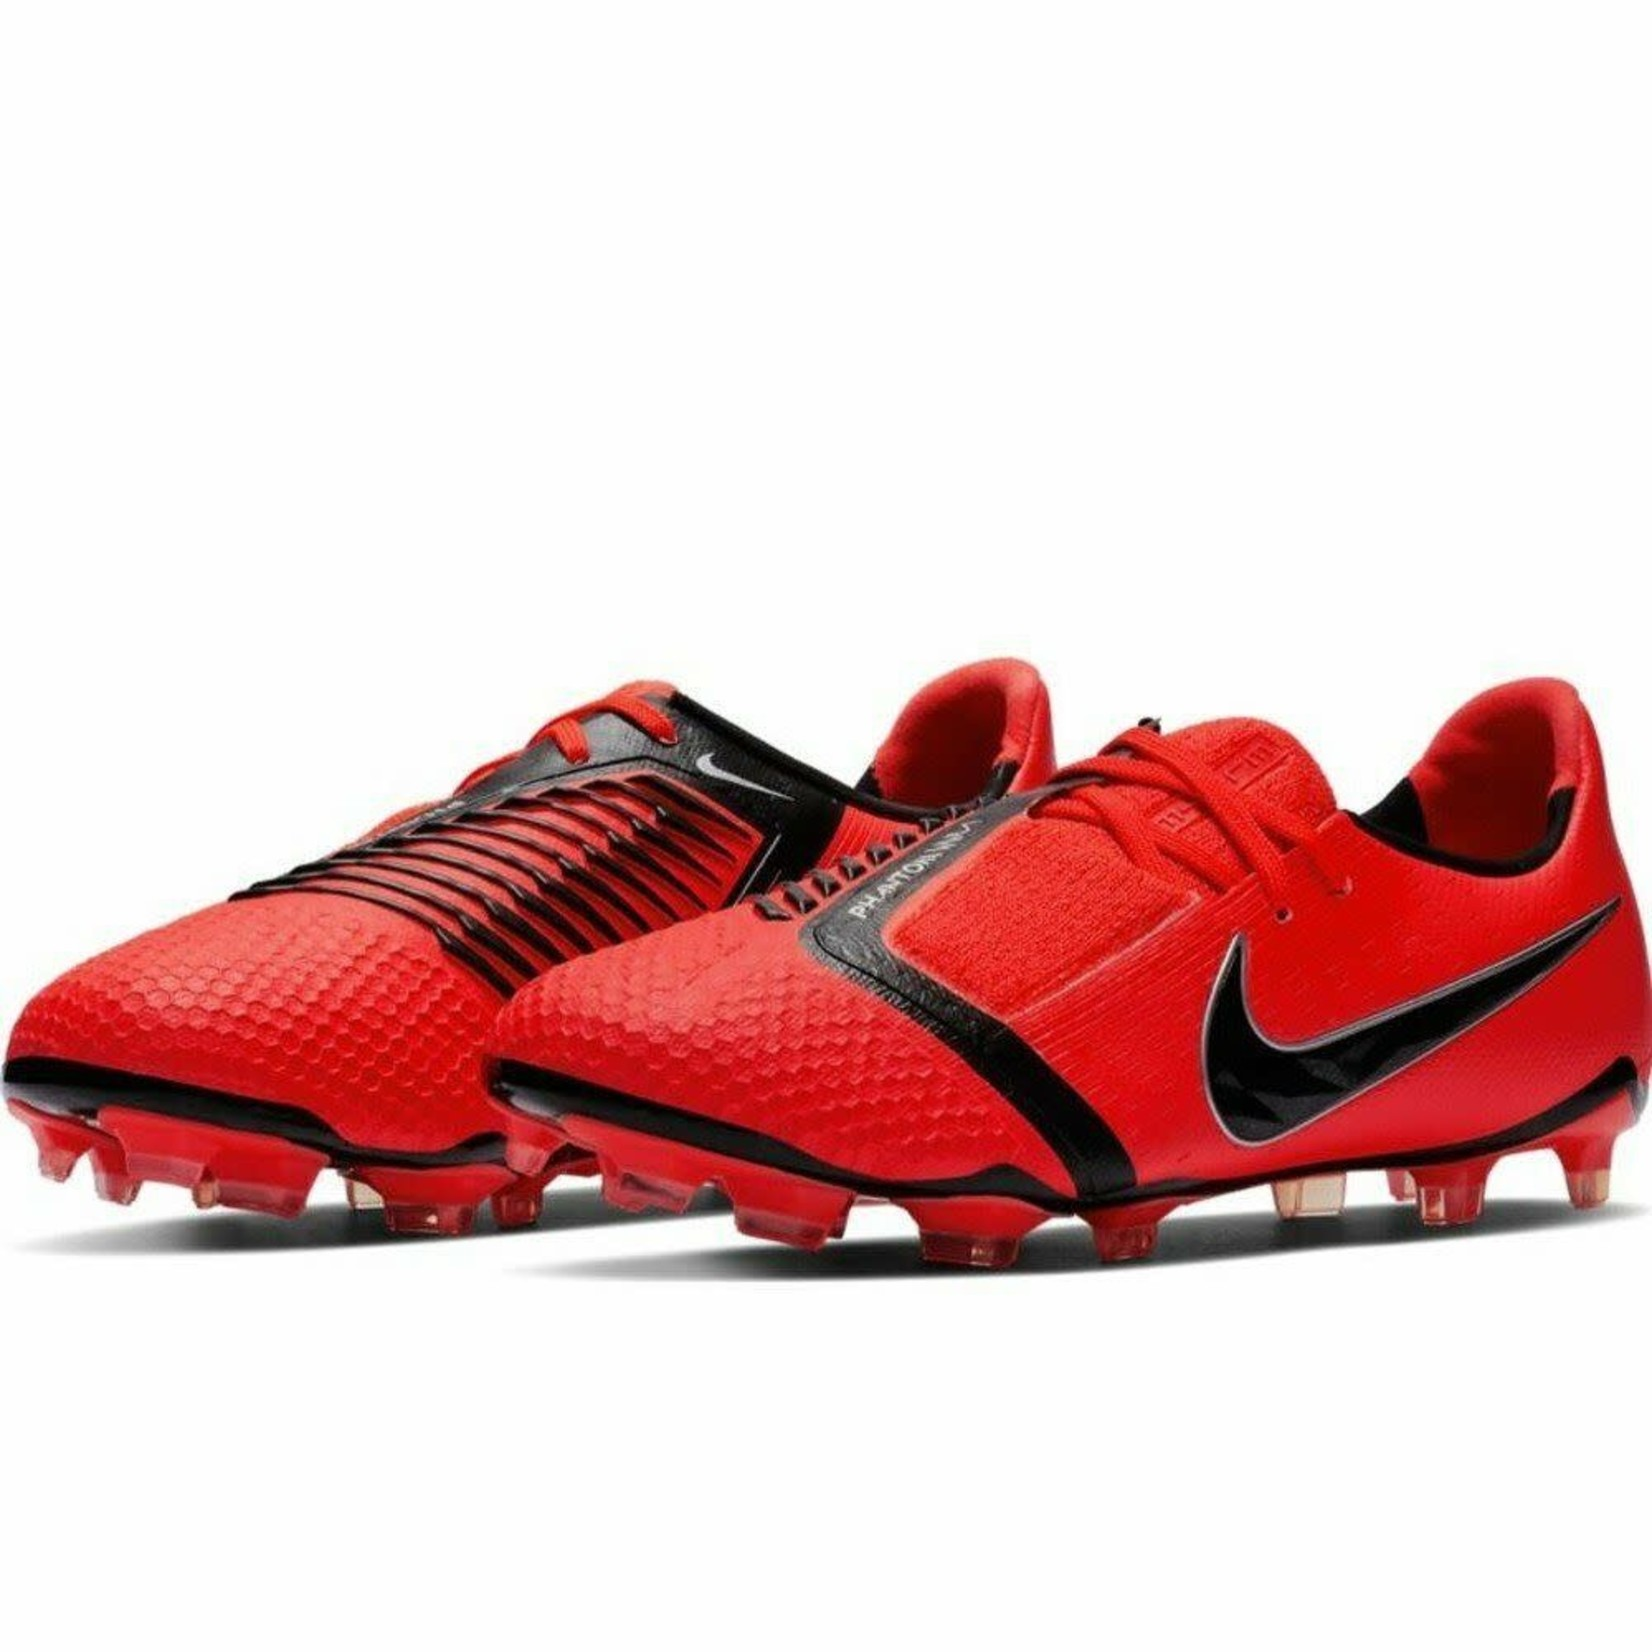 NIKE PHANTOM VENOM ELITE FG JR (RED)